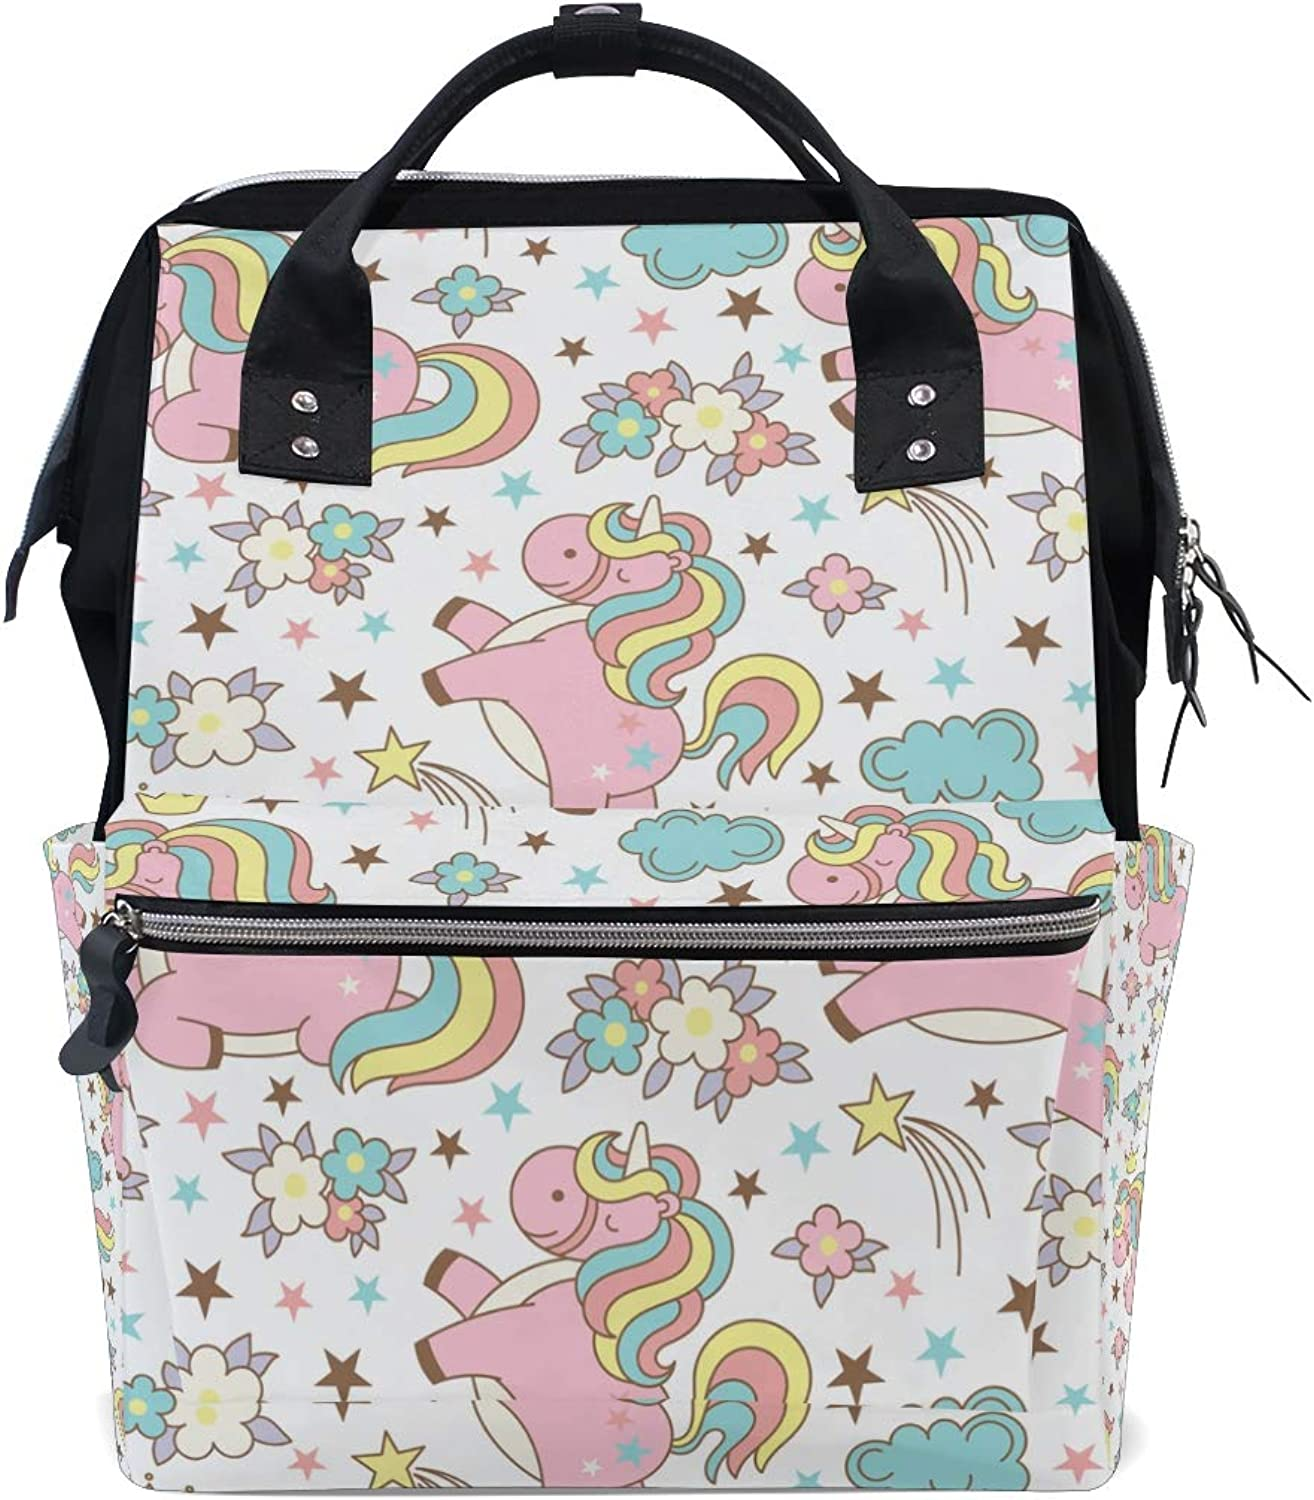 ColourLife Diaper bag Backpack Unicorn Pattern With Clouds Tote Bag Casual Daypack Multifunctional Nappy Bags